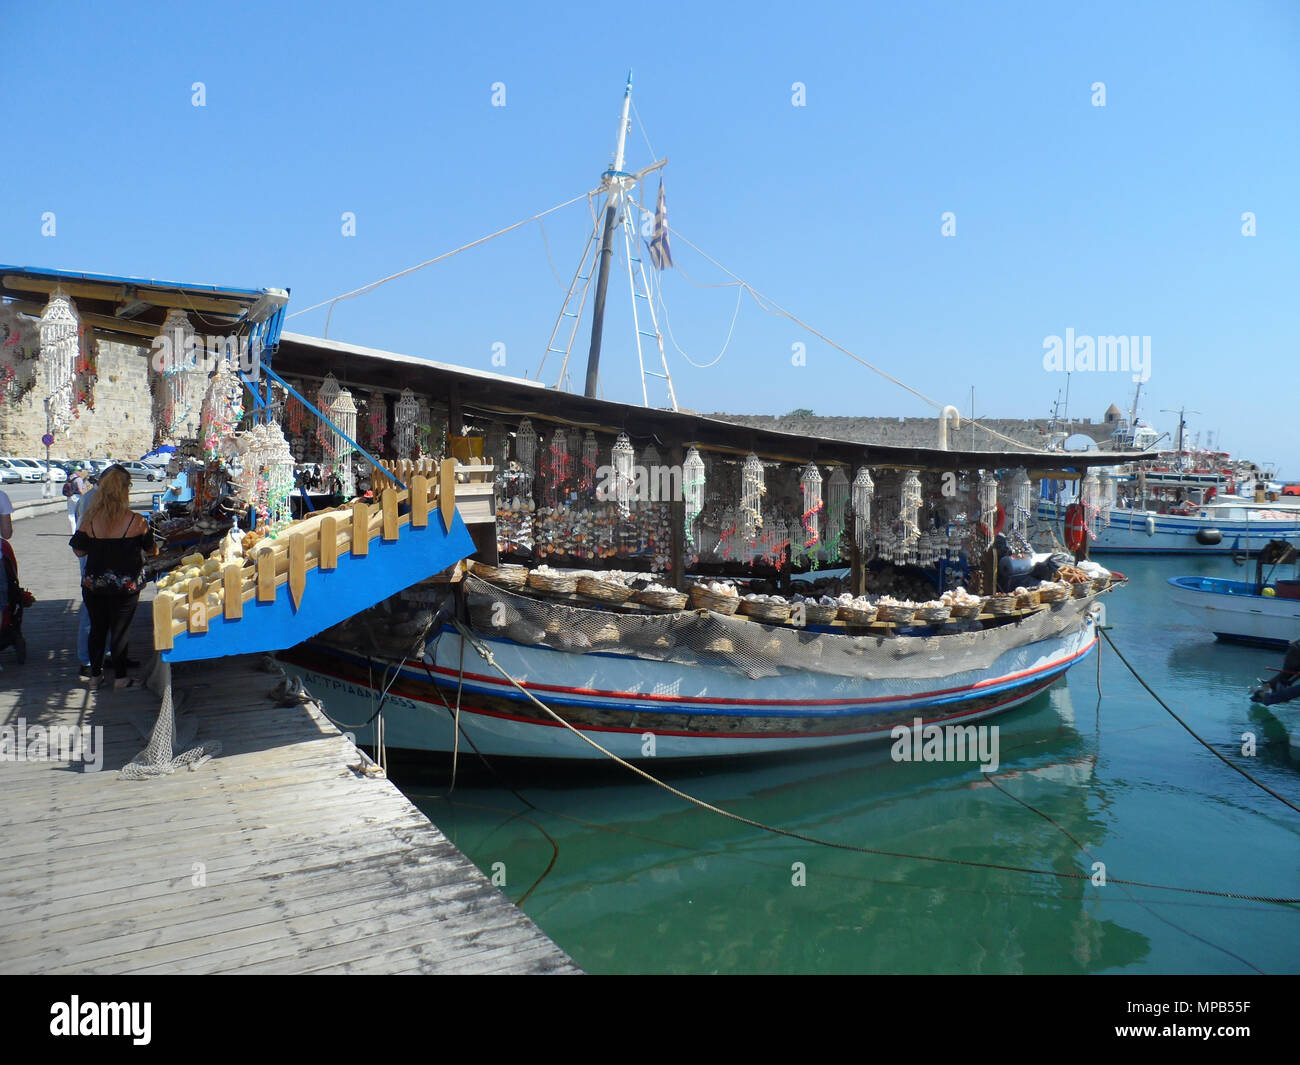 Tourists peruse the wares on a Greek fishing boat transformed into a souvenir shop at Rhodes harbour, greece. - Stock Image